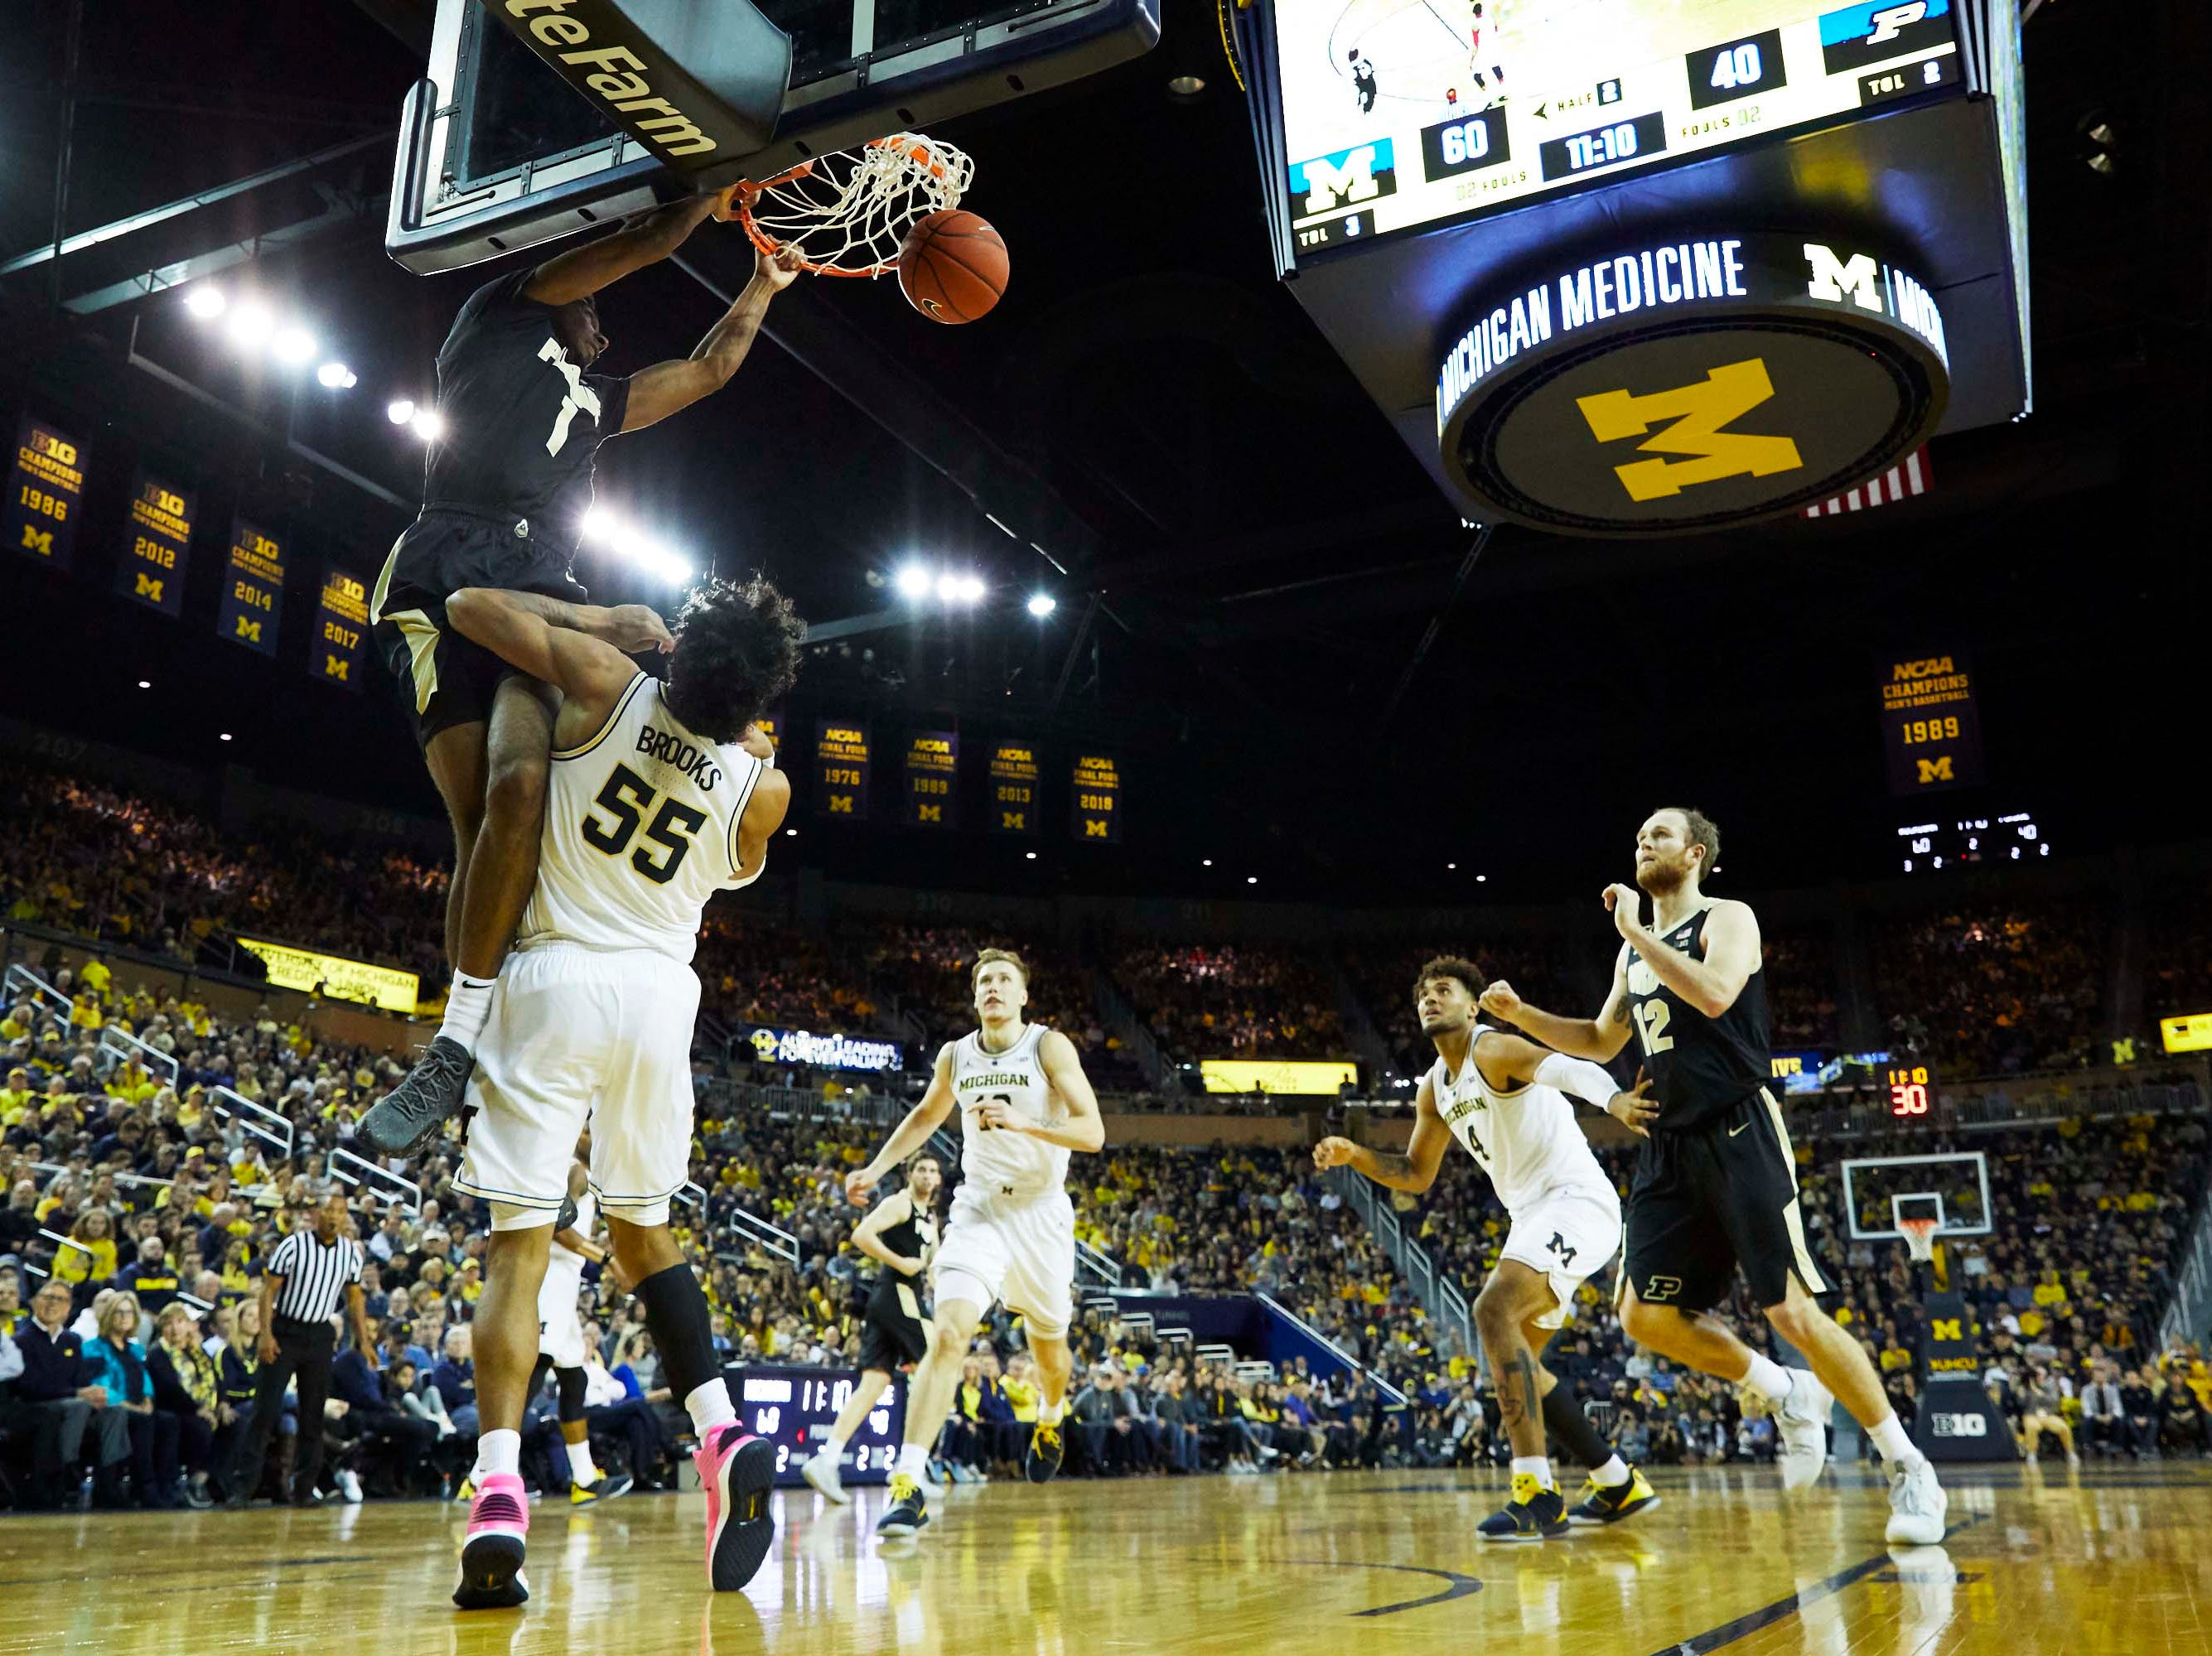 Dec 1, 2018; Ann Arbor, MI, USA; Purdue Boilermakers forward Aaron Wheeler (1) dunks on Michigan Wolverines guard Eli Brooks (55) in the second half at Crisler Center. Mandatory Credit: Rick Osentoski-USA TODAY Sports